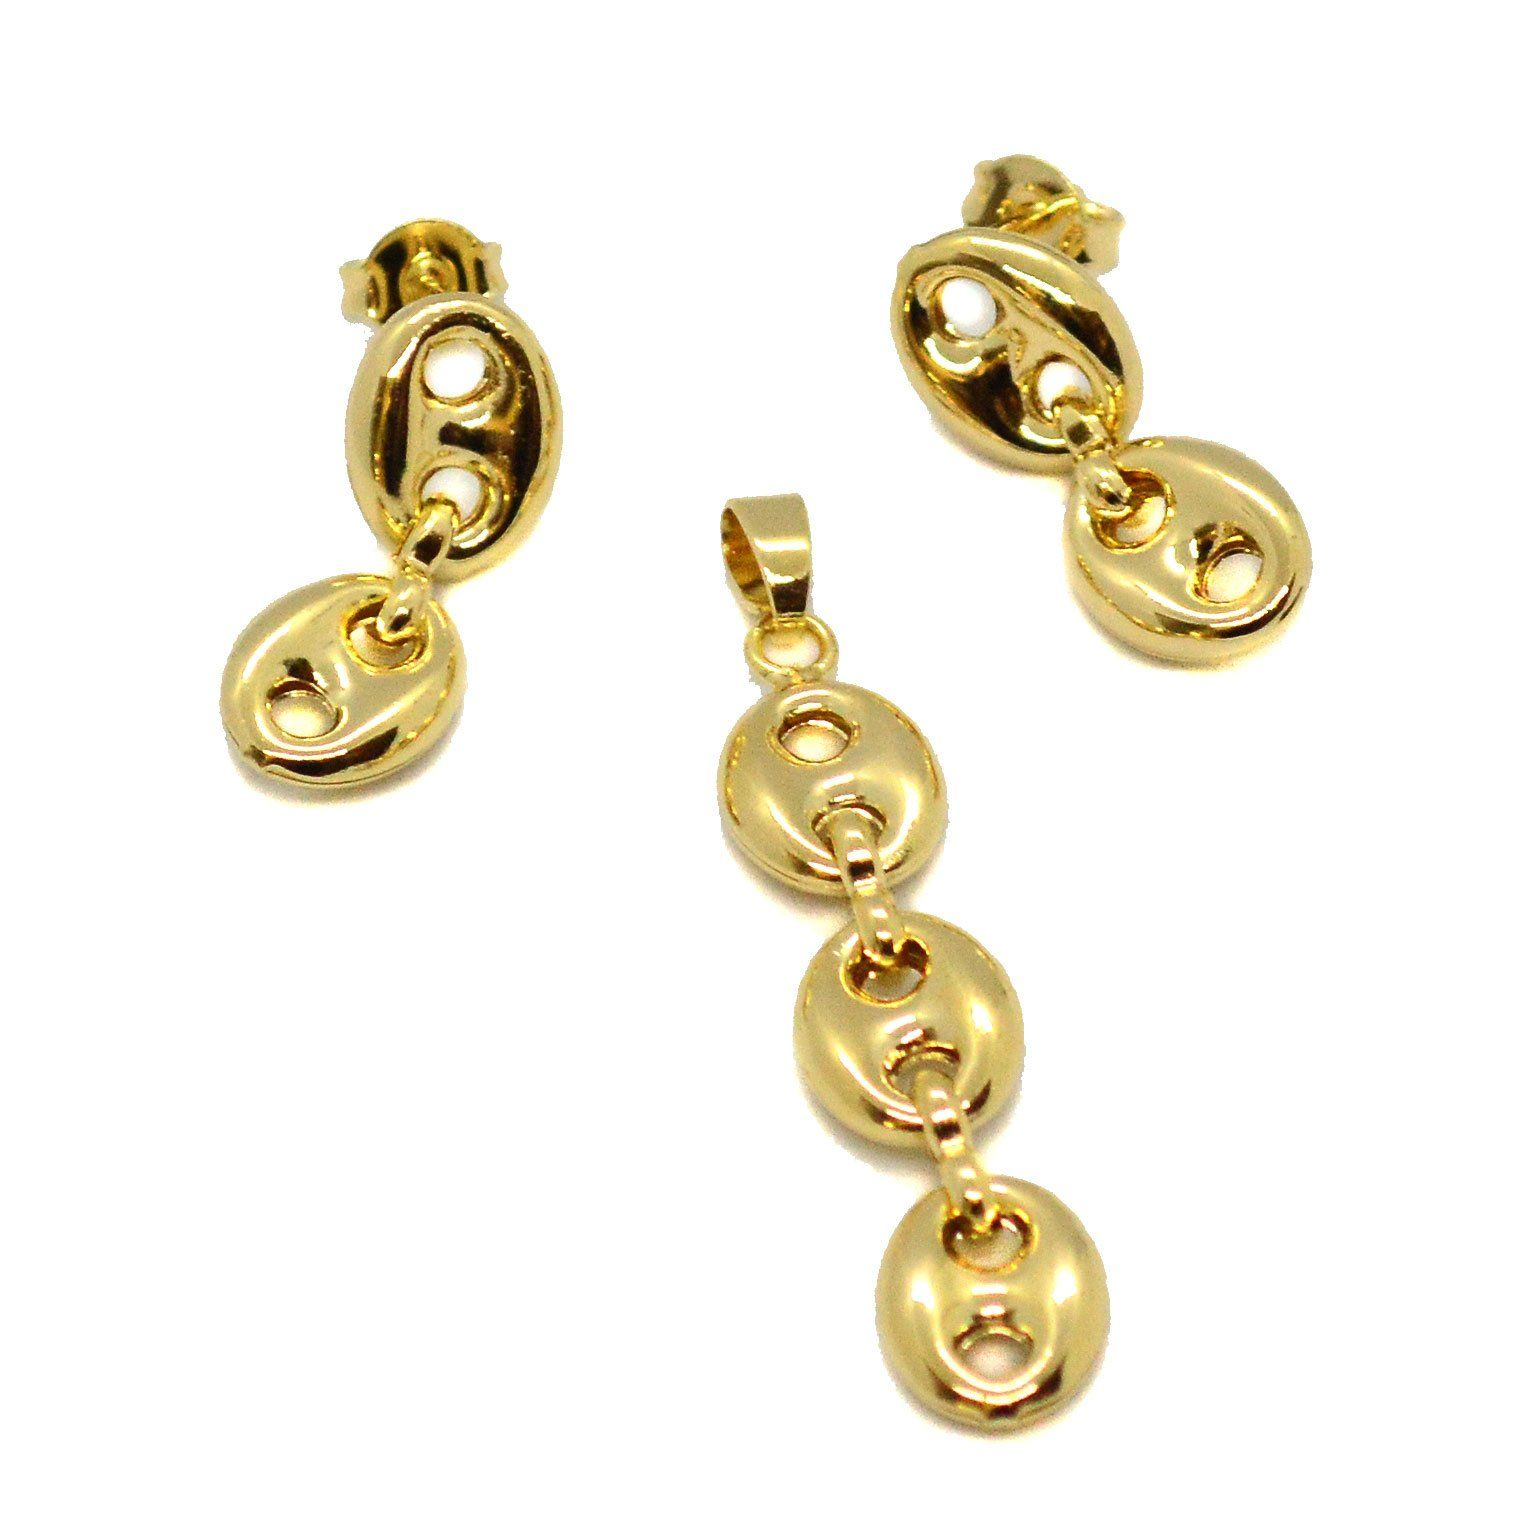 H gold filled puff marine earring and pendant set in